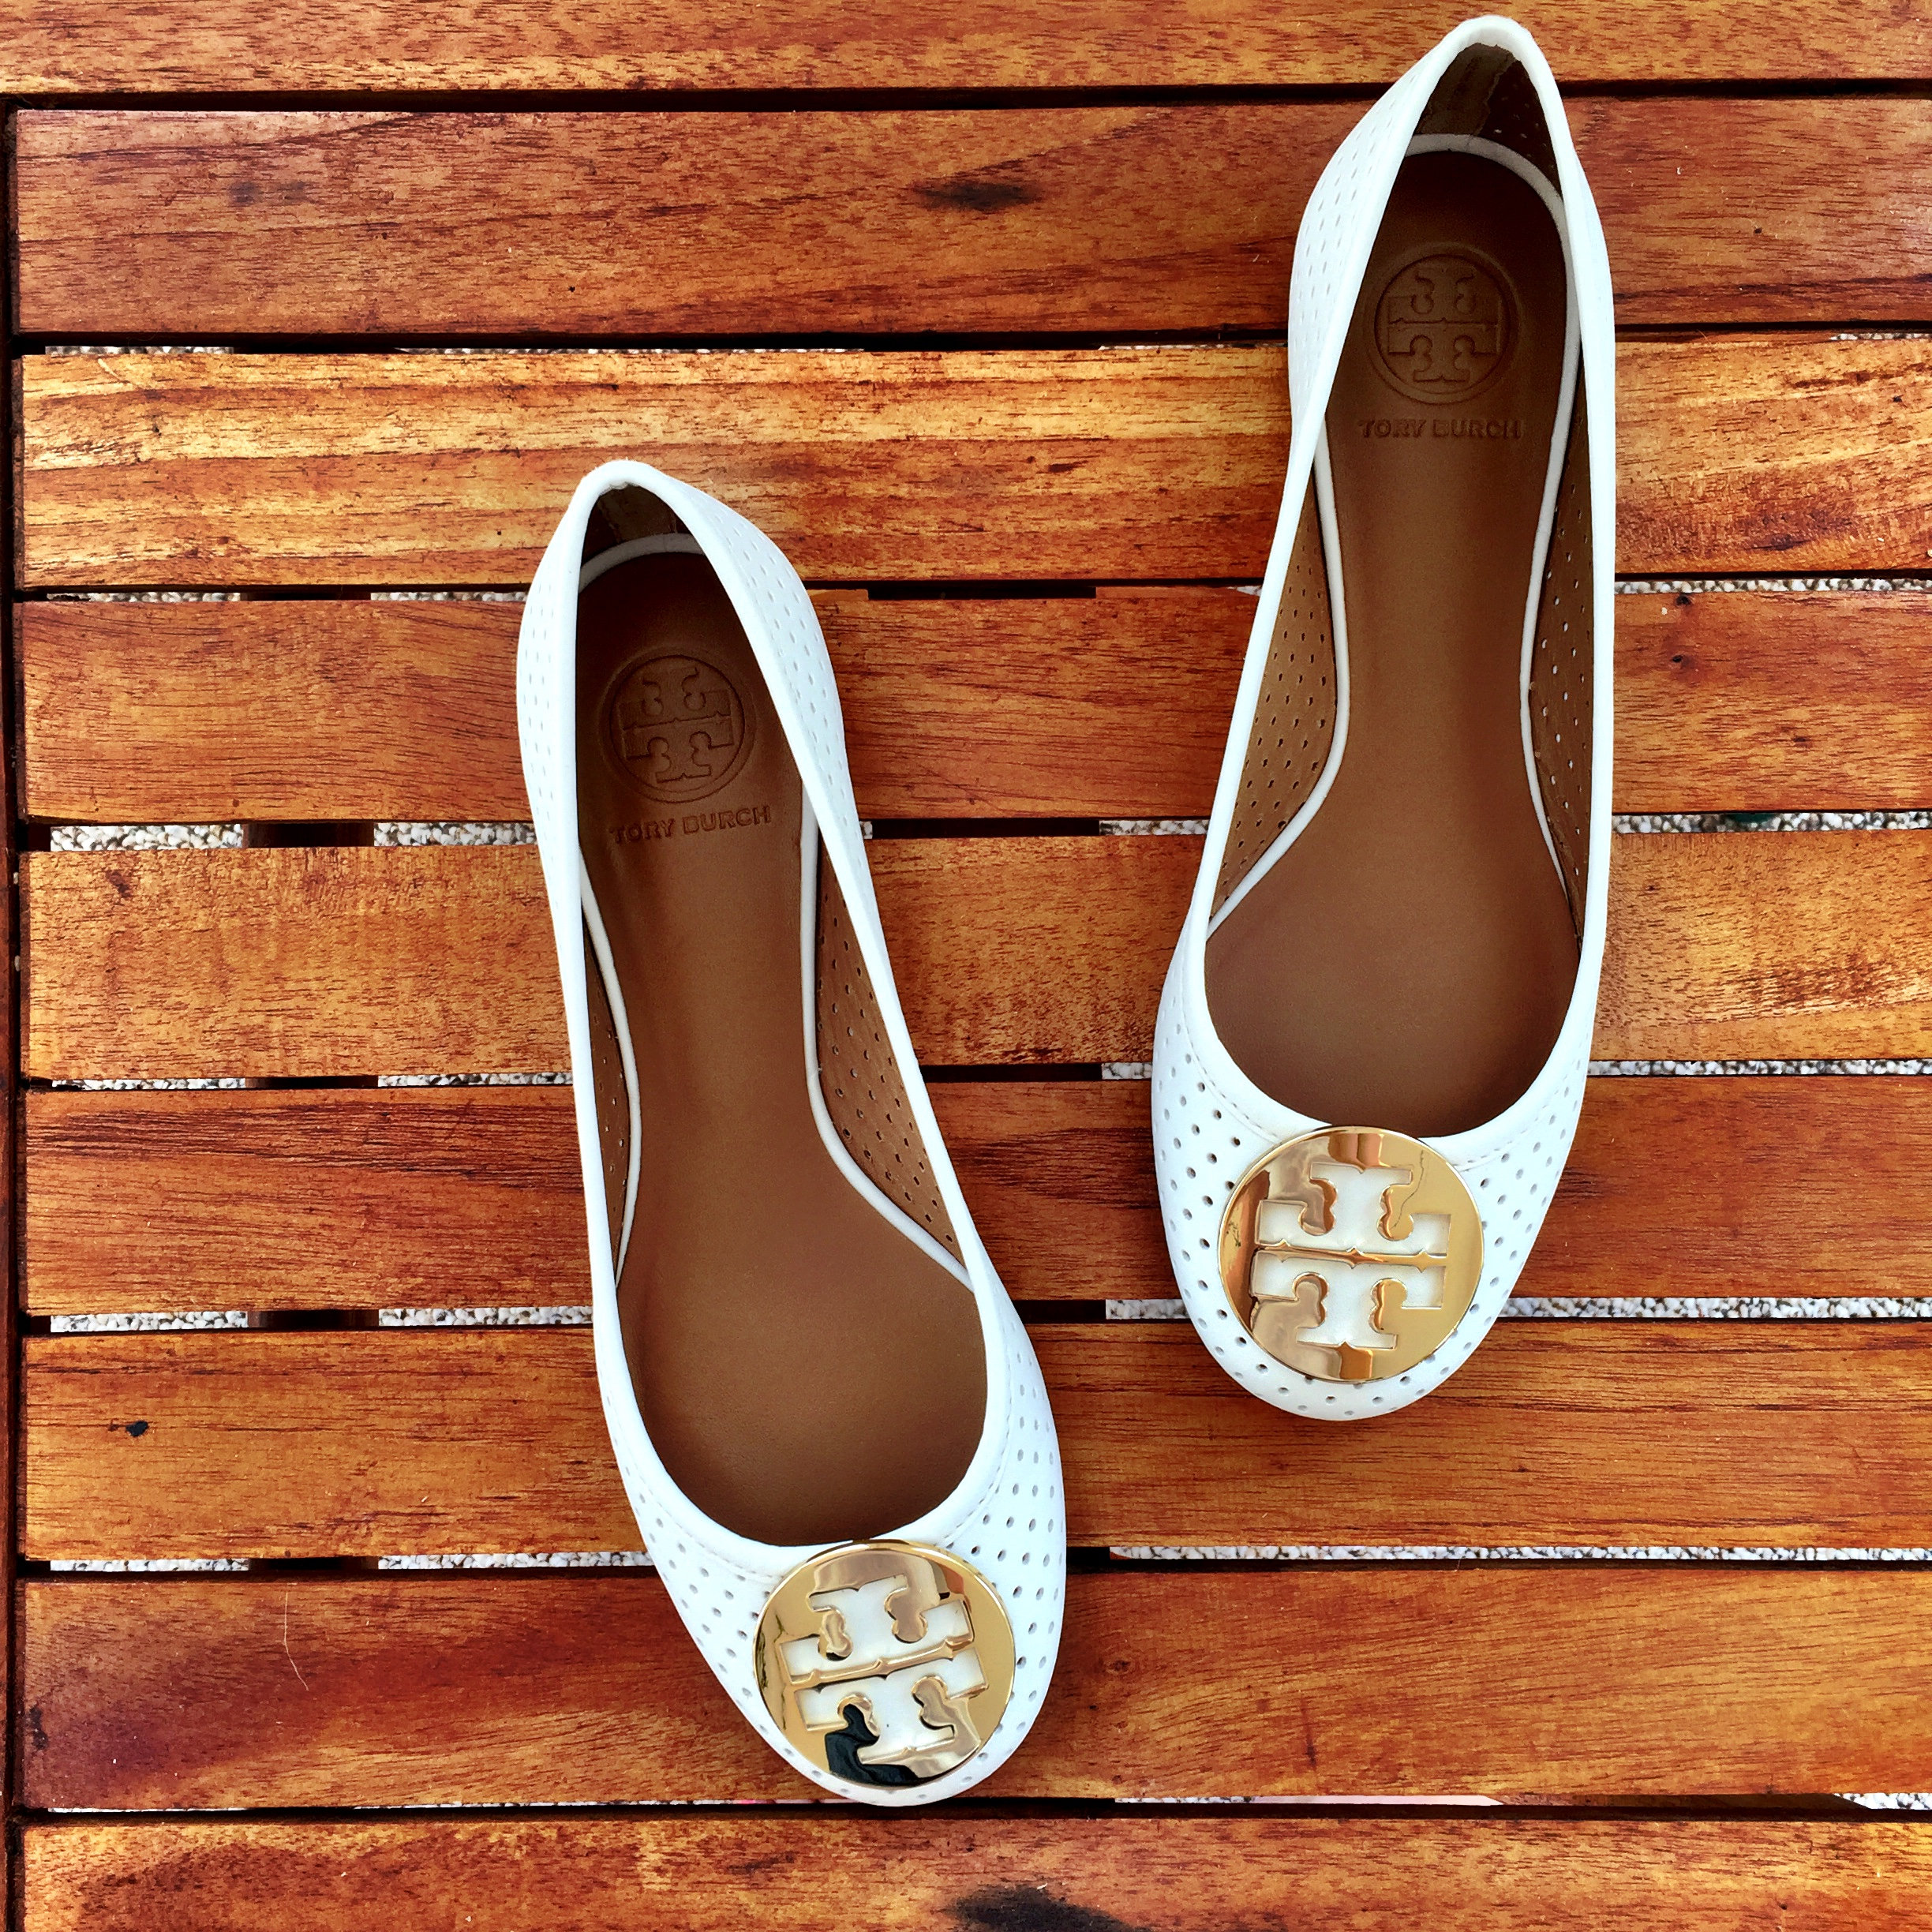 these white tory burch flats are perfect for summer, and the perforated  material allows circulation as well. i recently purchased white espadrille  wedges ...